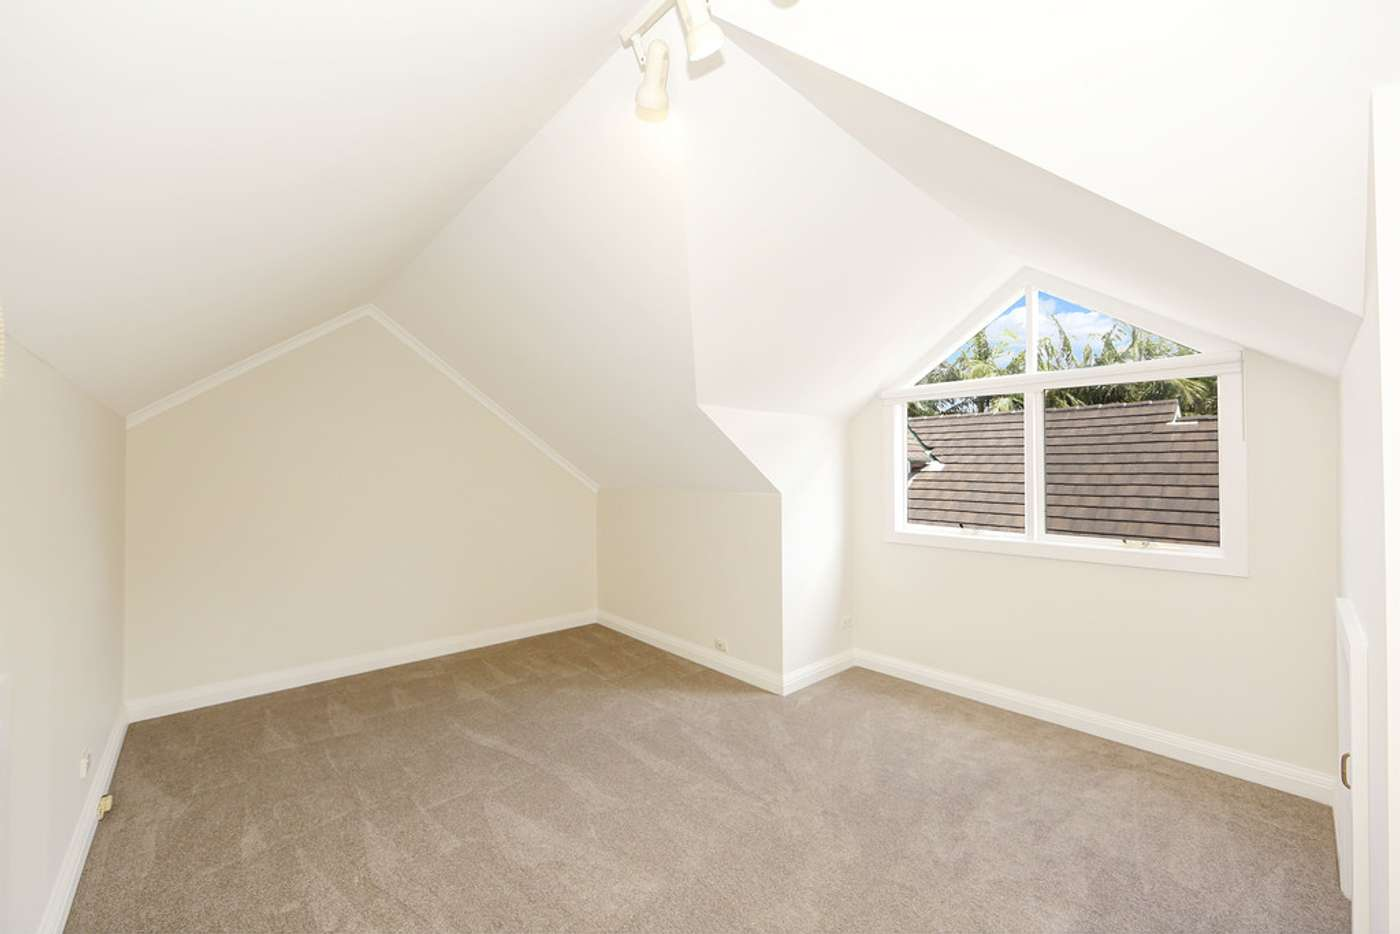 Sixth view of Homely apartment listing, 9/2-4 Hampden Avenue, Cremorne NSW 2090